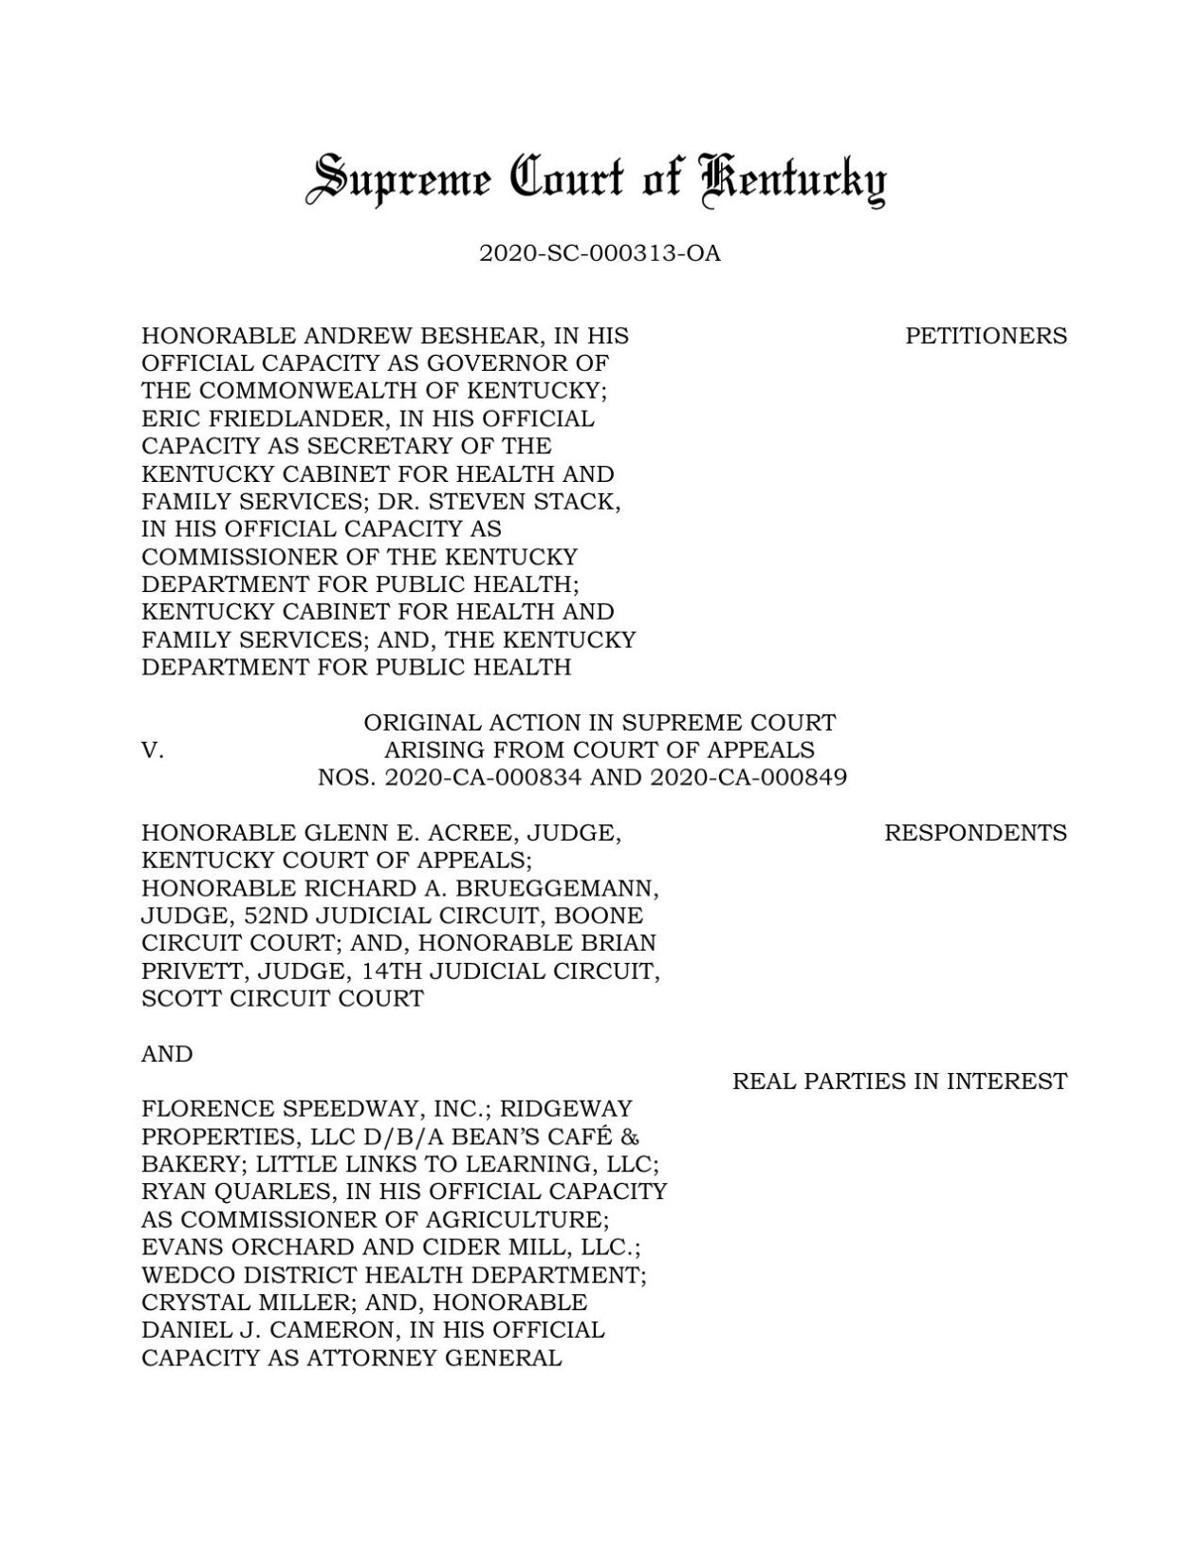 Kentucky Supreme Court's unanimous ruling to uphold Gov. Andy Beshear's COVID-19 orders